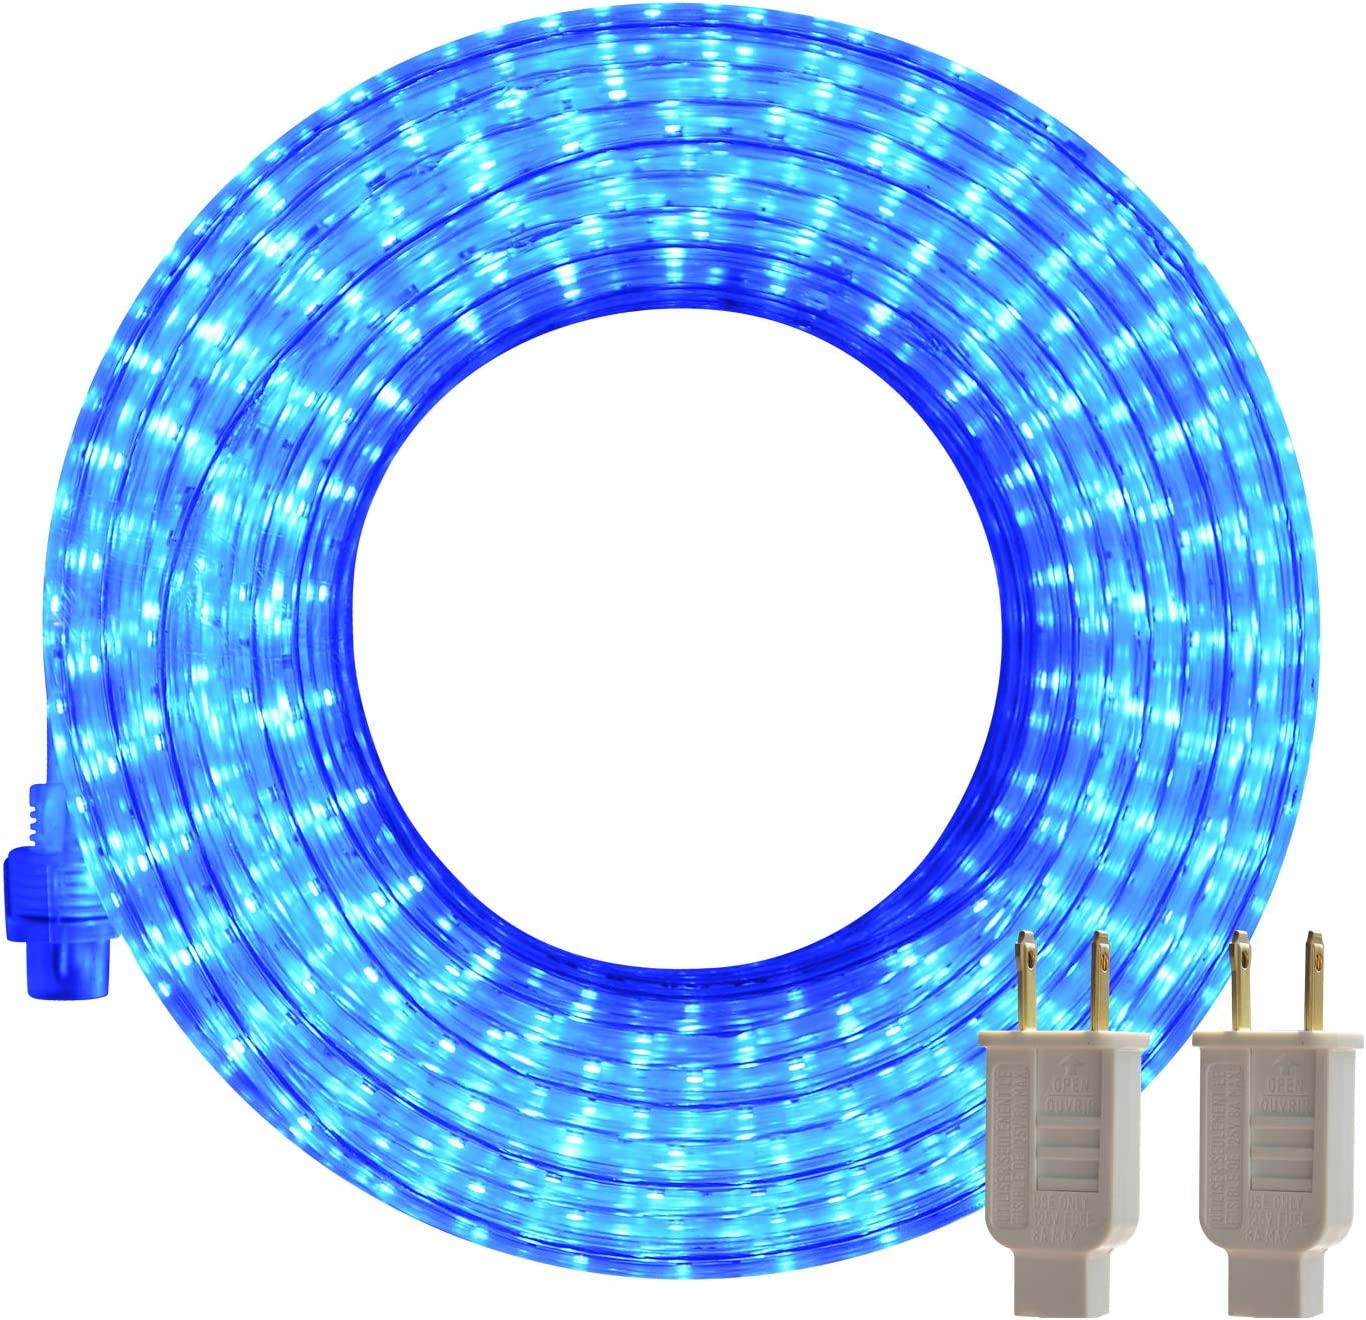 Amazon.com: LED Rope Lights Outdoor Blue 50ft Flexible Waterproof ... led strip lights Amazon.com